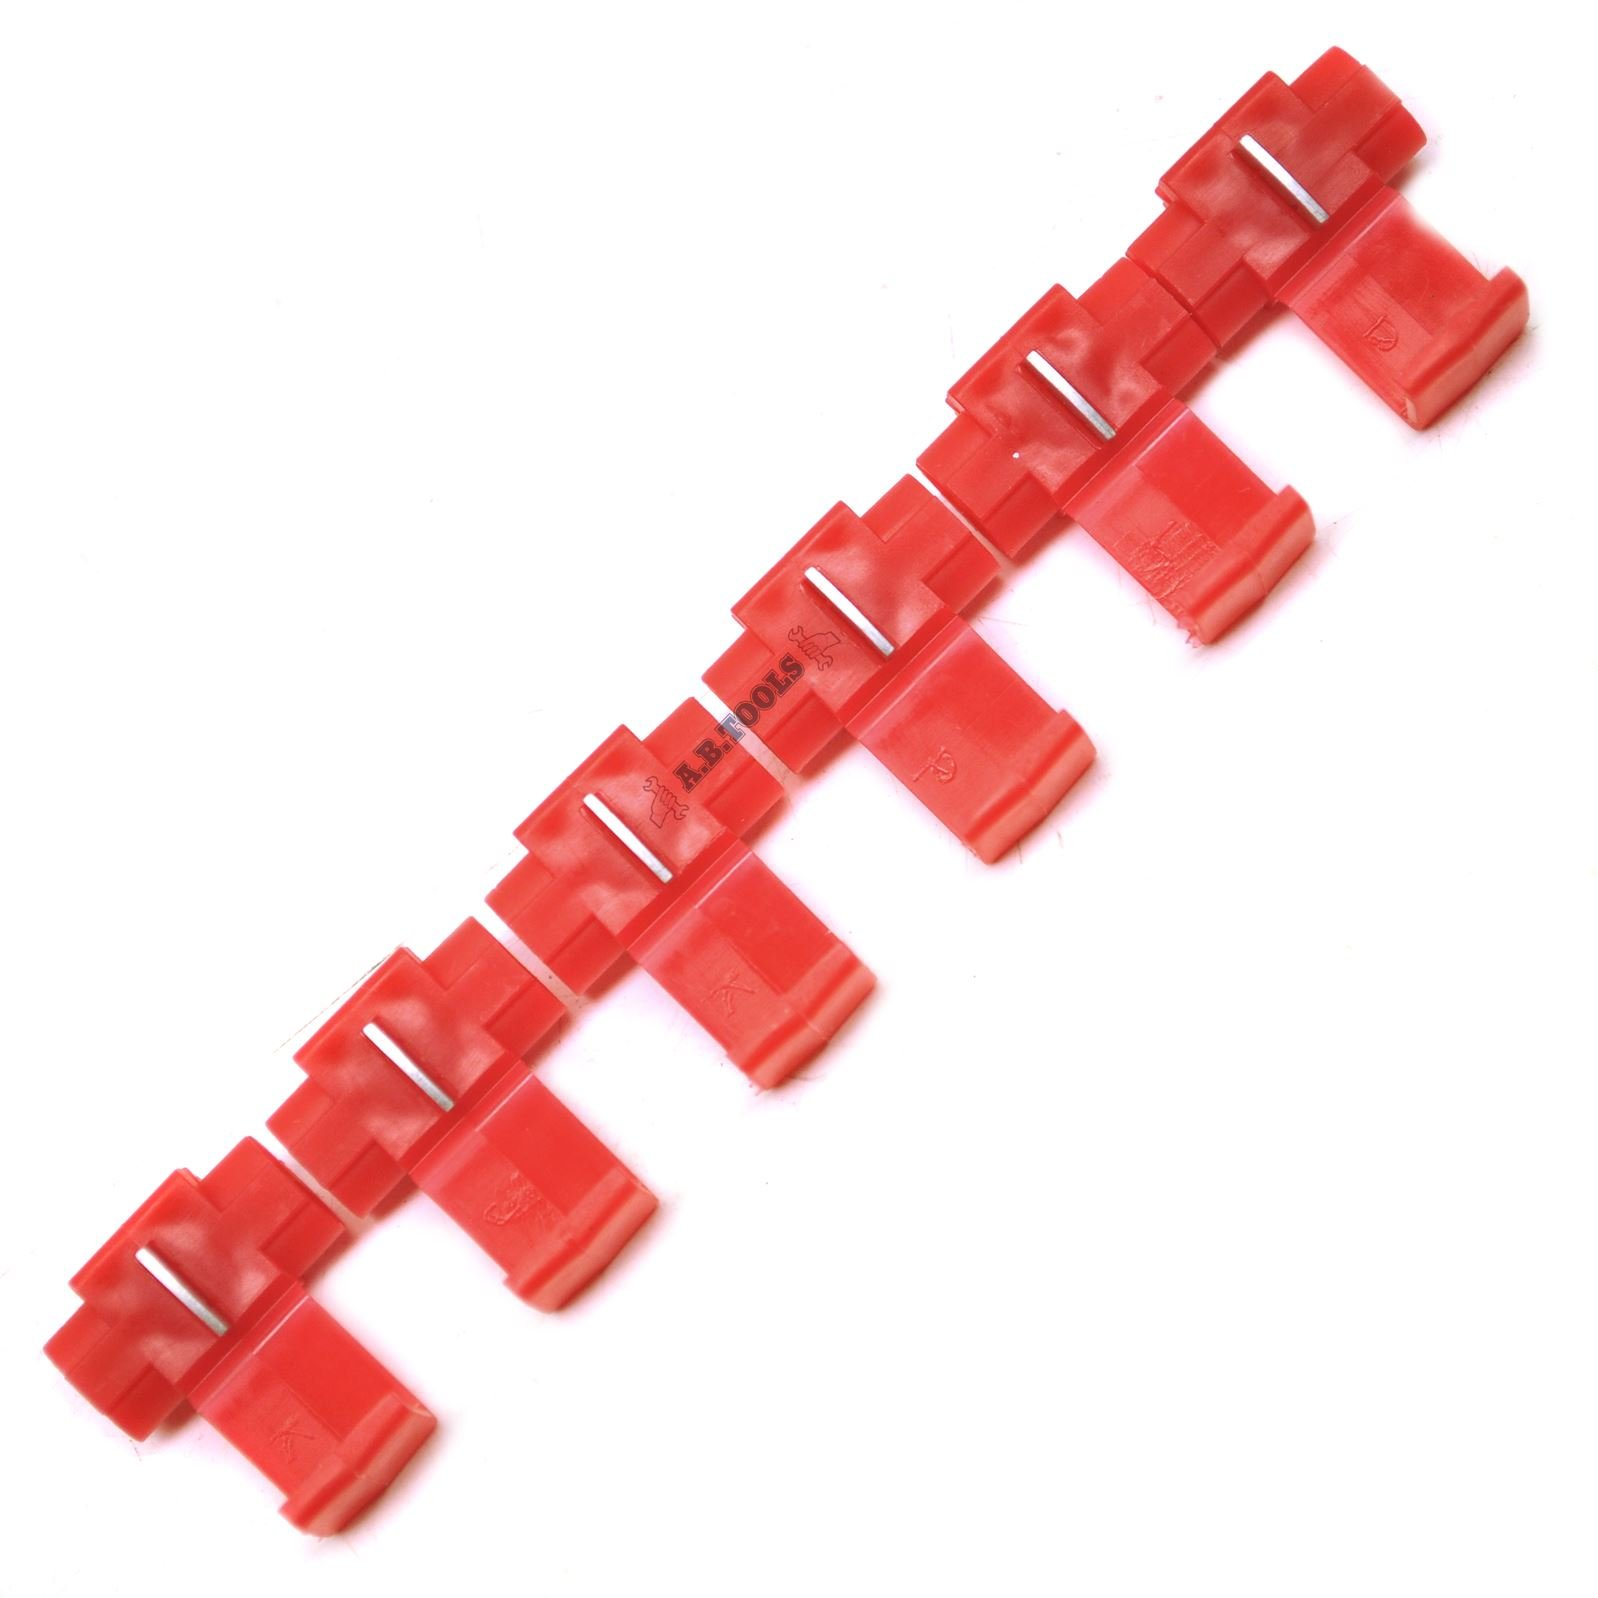 Scotch Lock / Snap Connector Set 6 PACK TR144